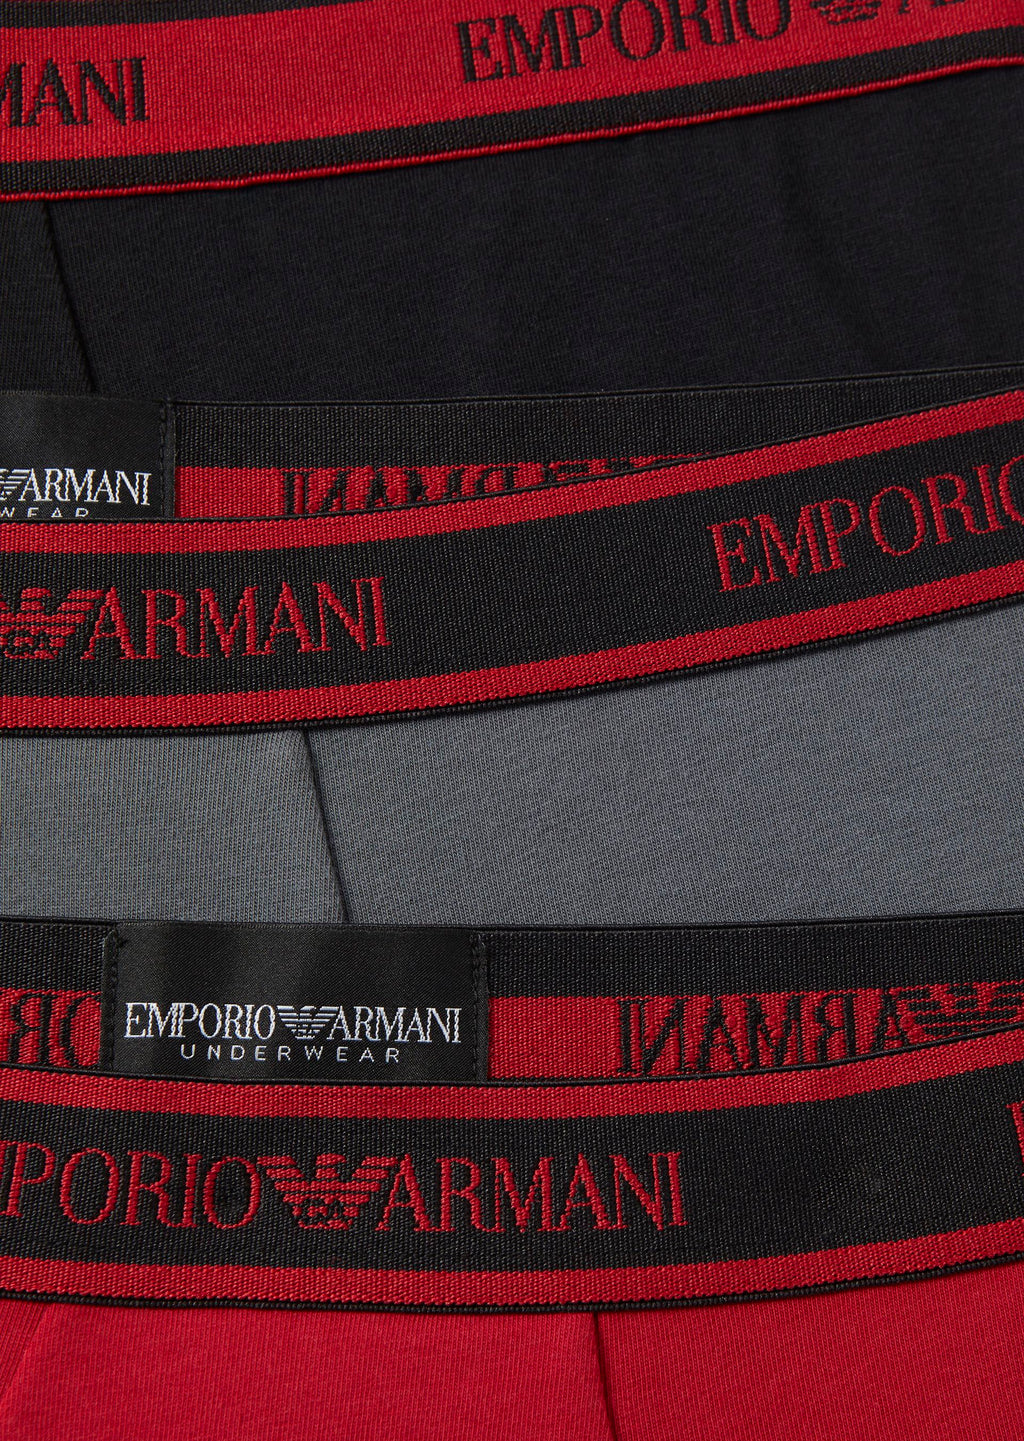 Emporio Armani 3 Pack Trunk - Ignition For Men